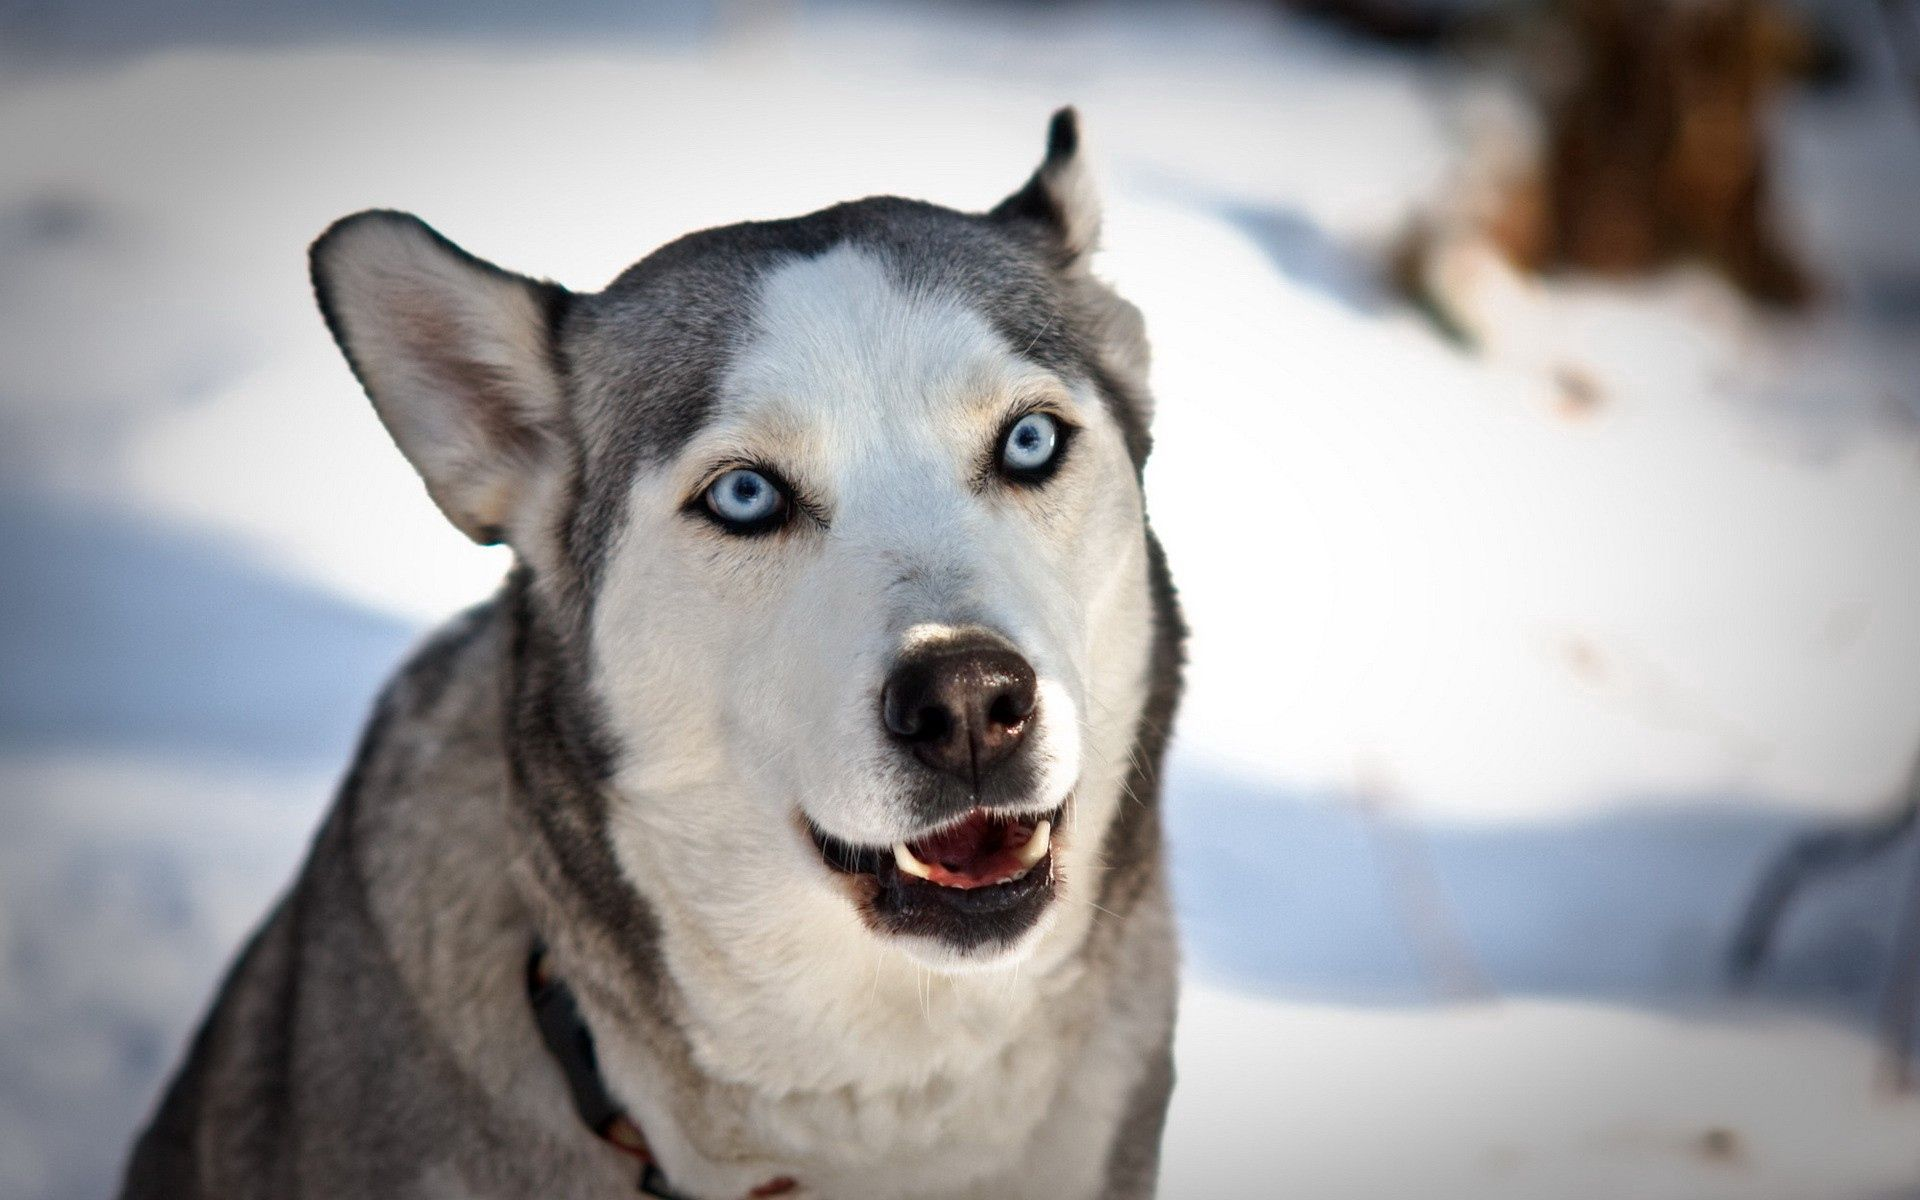 76701 download wallpaper Animals, Dog, Husky, Haska, Muzzle, Blue Eyed, Blue-Eyed, Snow screensavers and pictures for free